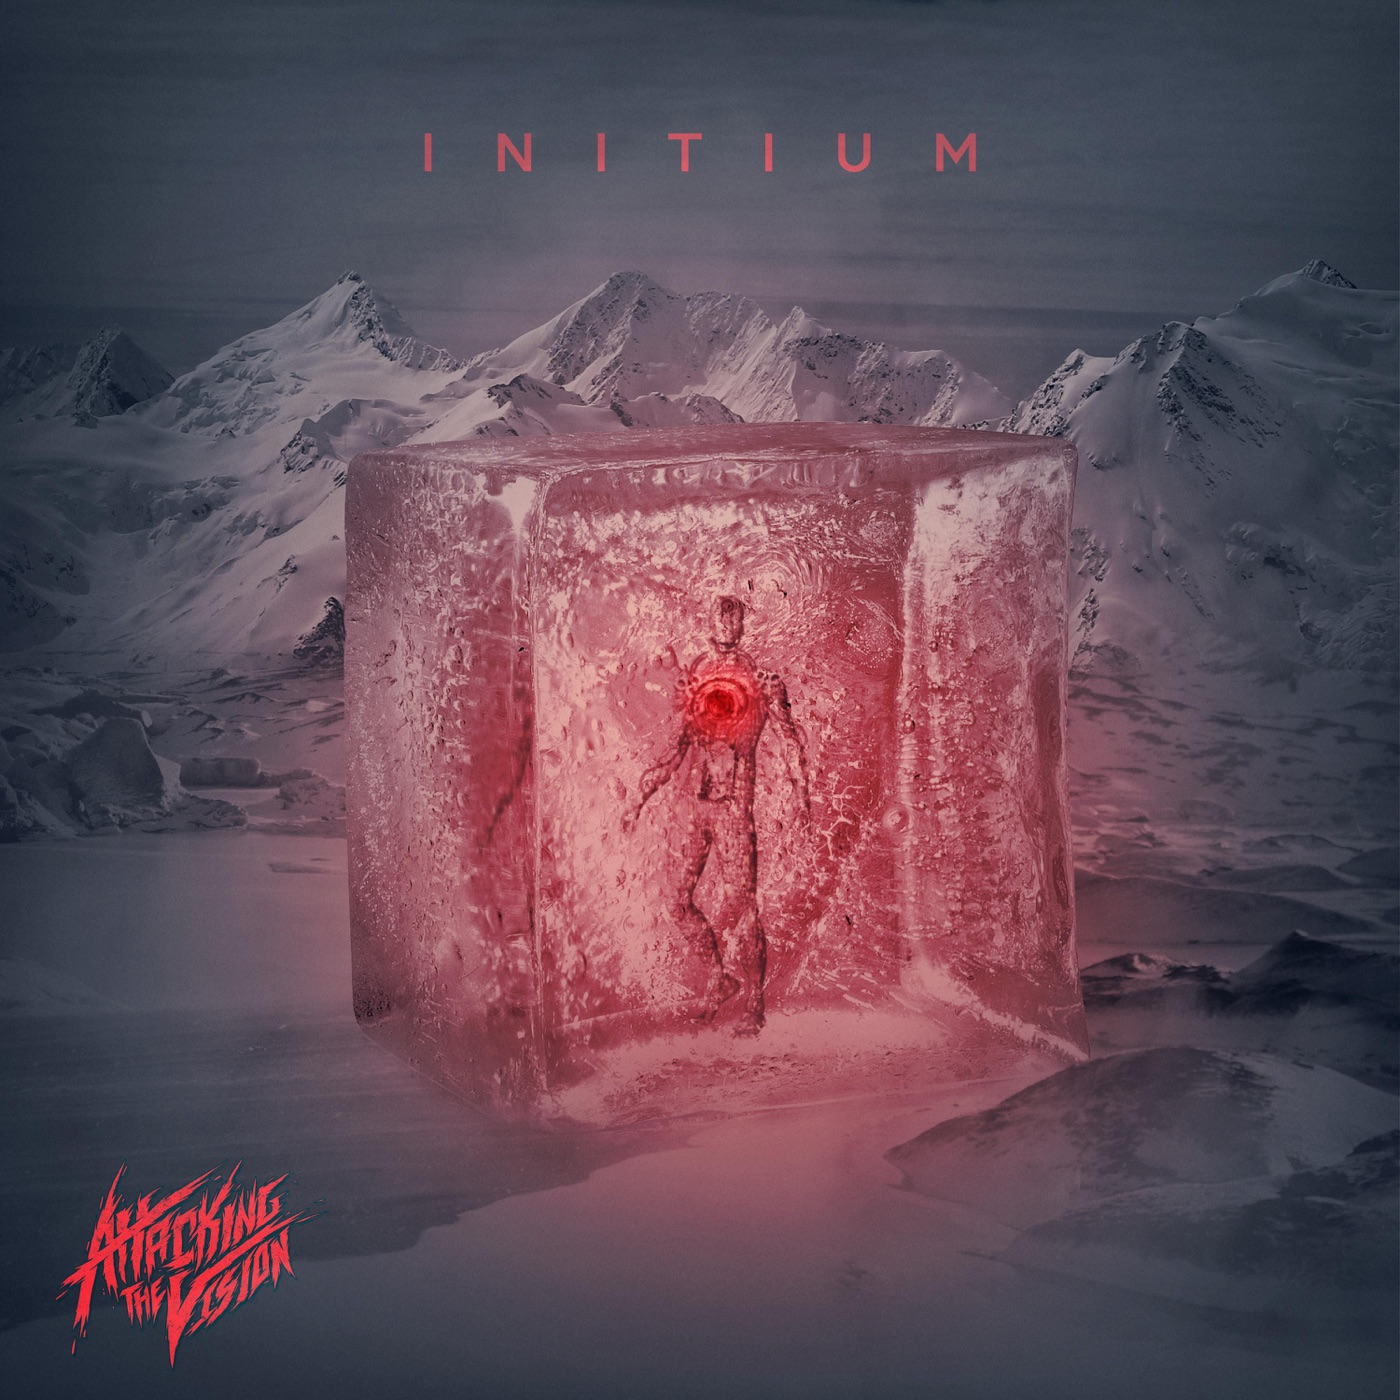 Attacking the Vision - Infinitum [single] (2019)